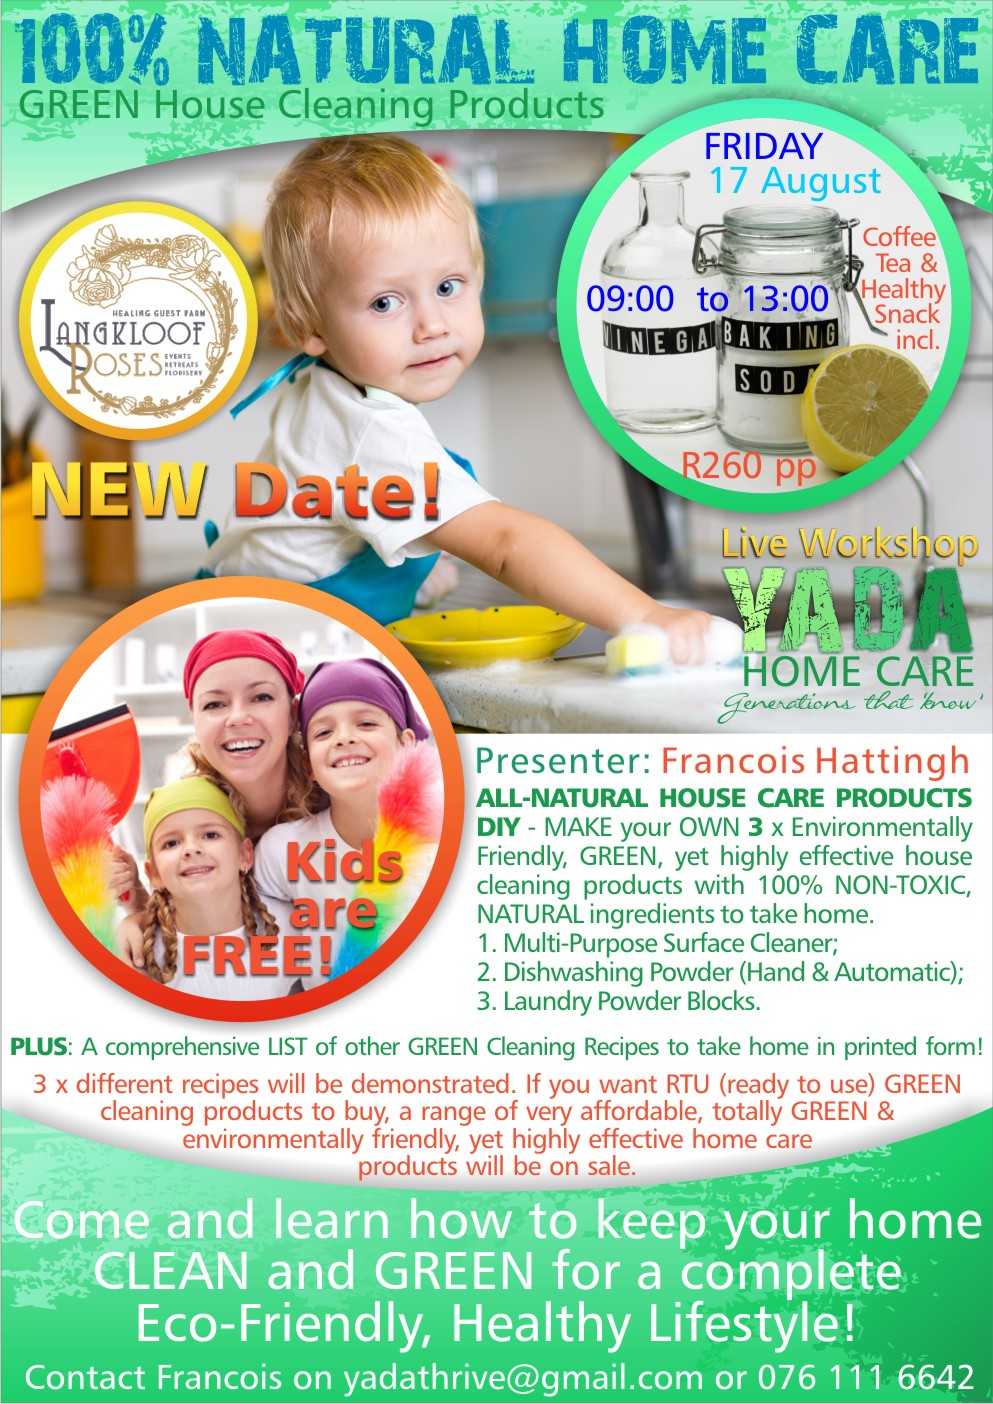 Natural Home Care 17 August.jpg